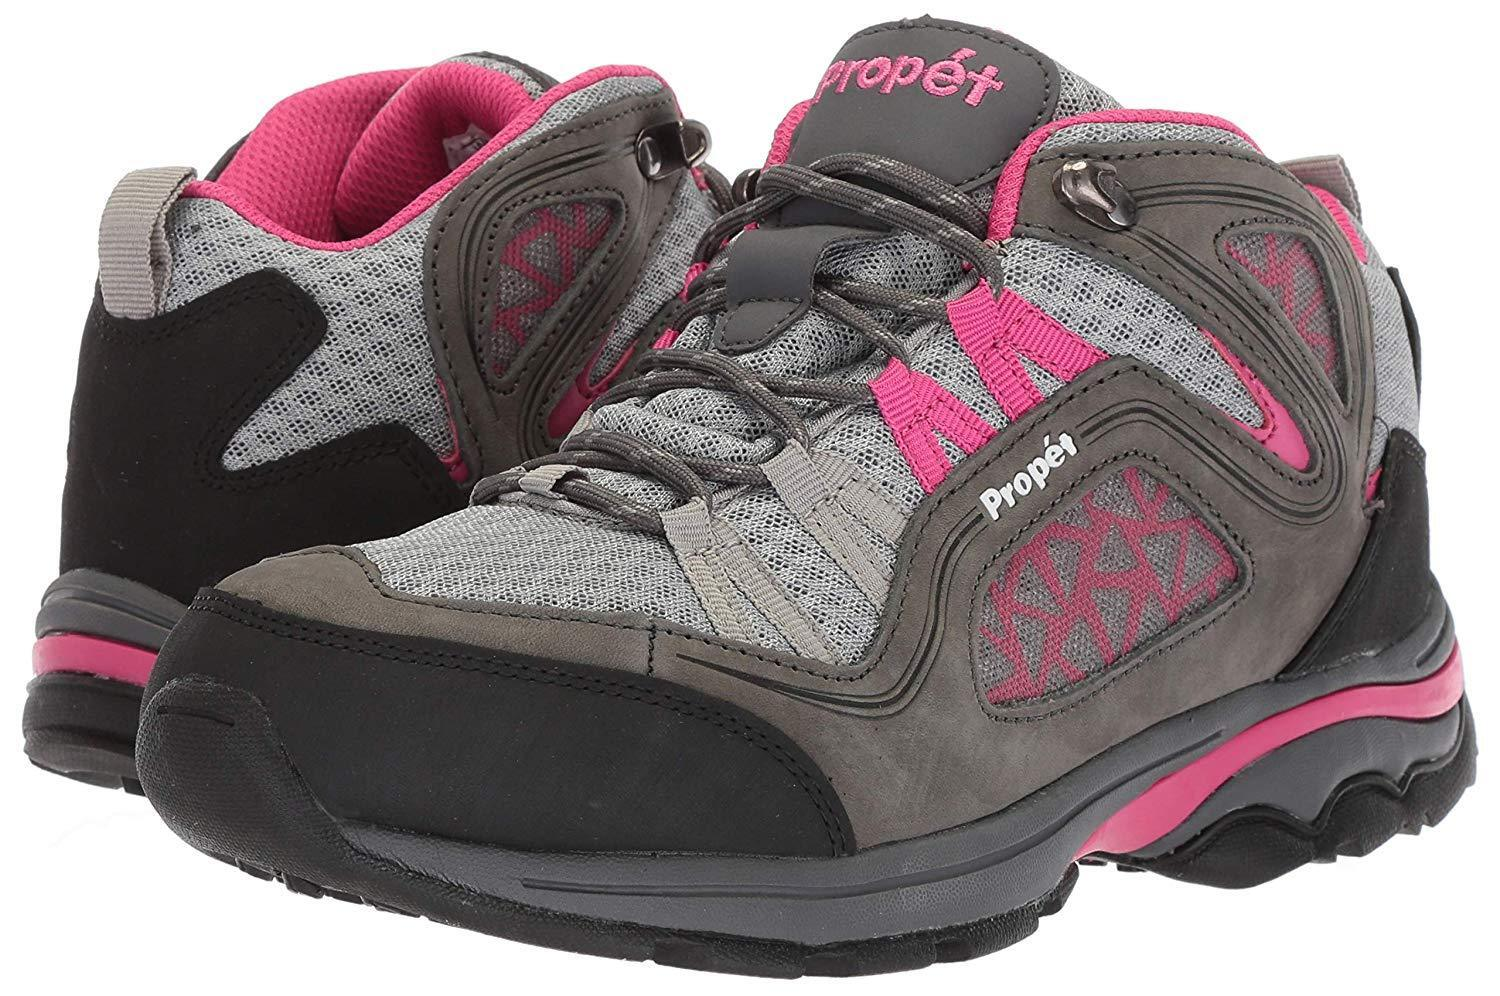 Propet Women's Peak Trail Hiking Waterproof Boots, Style WBA002M